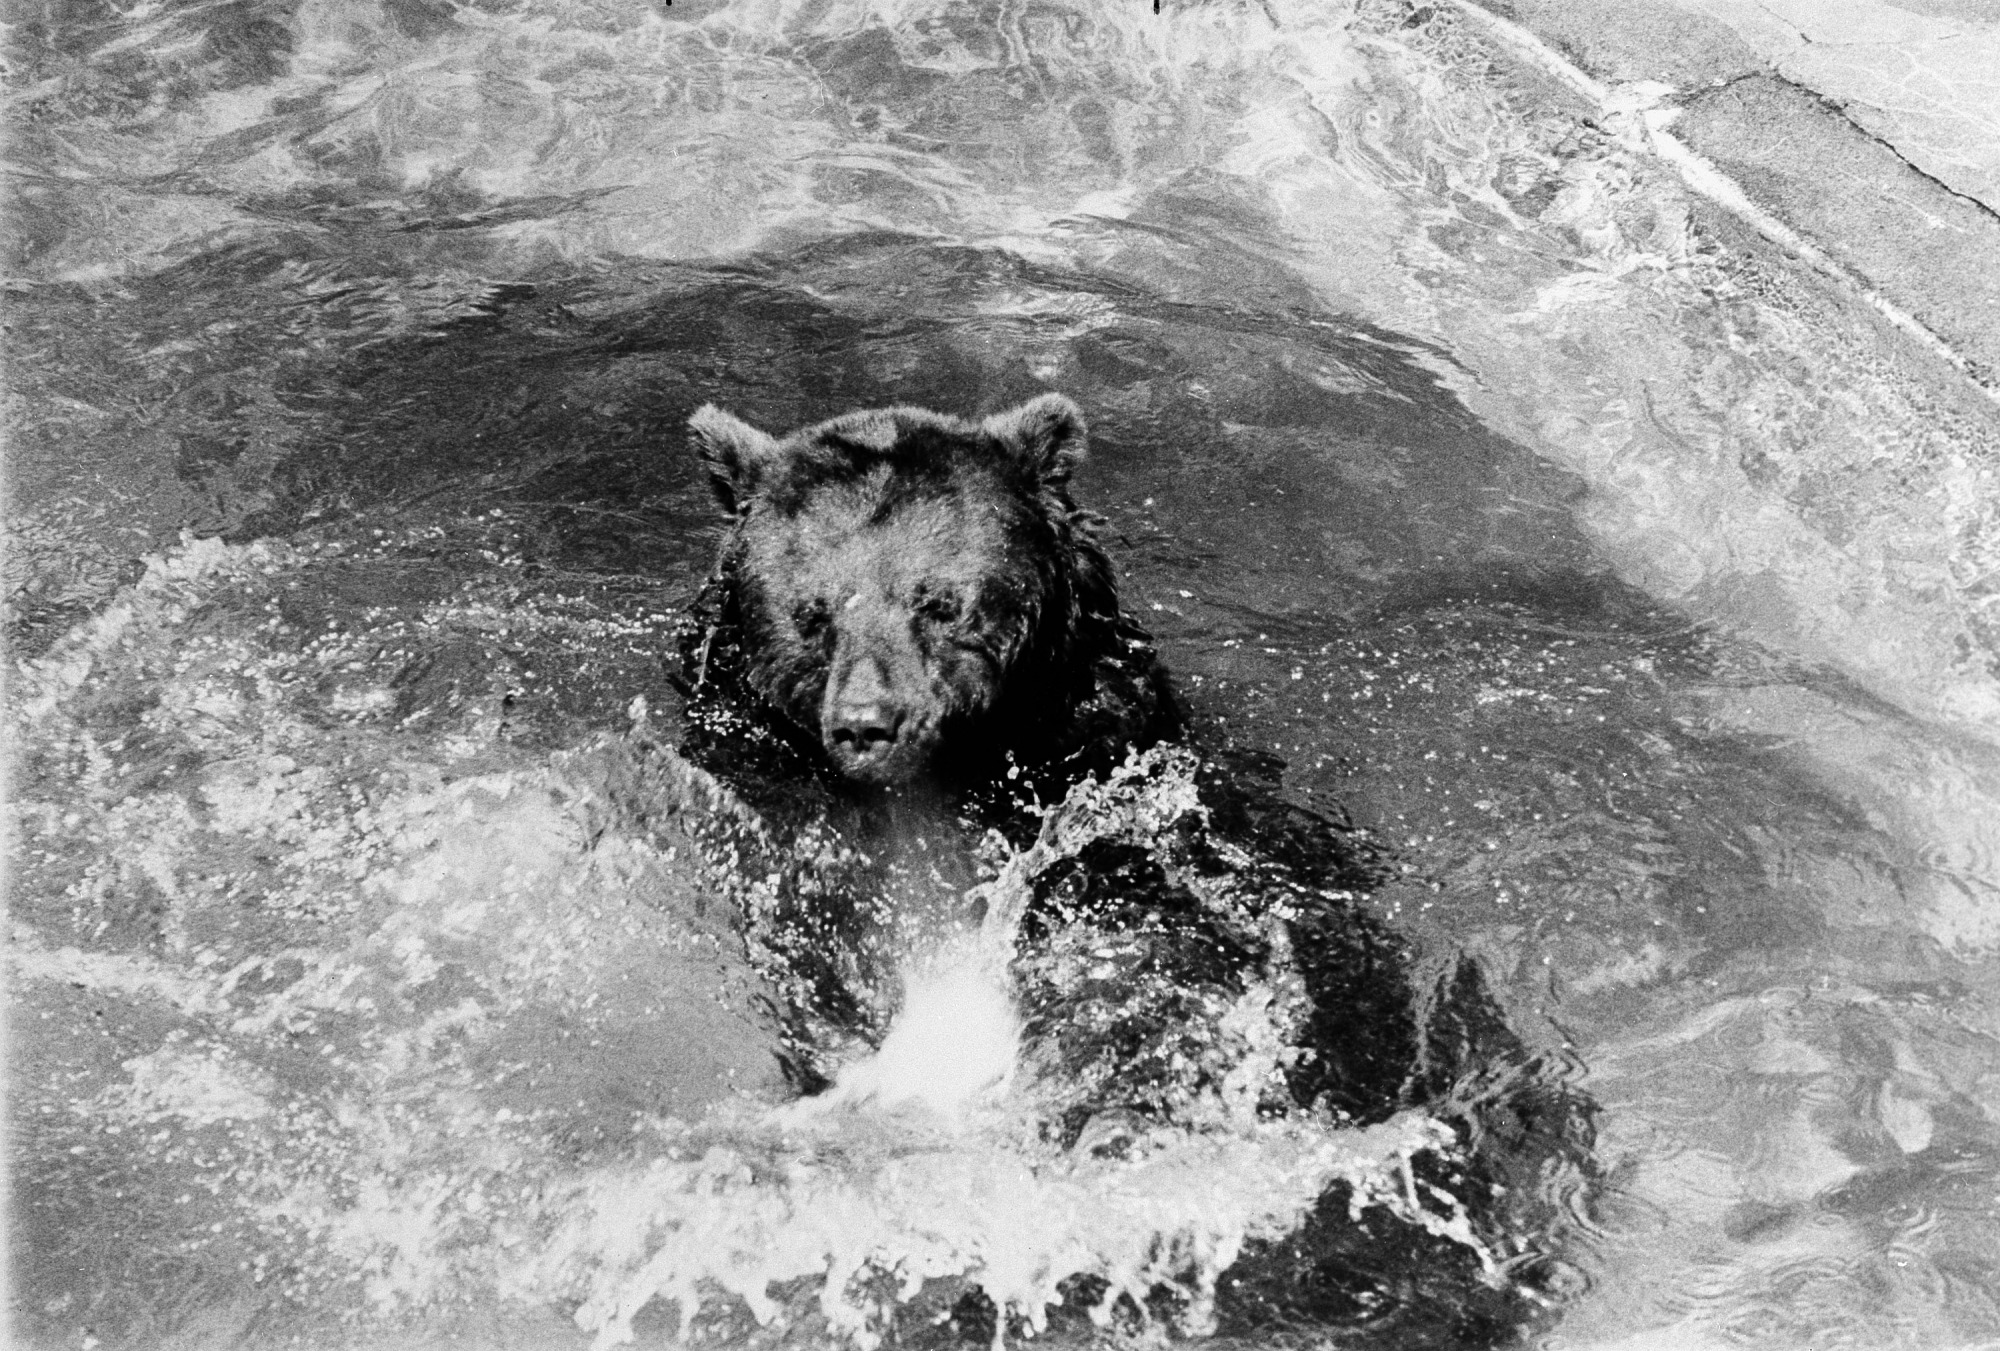 Smokey Bear Frolicking in a Pool